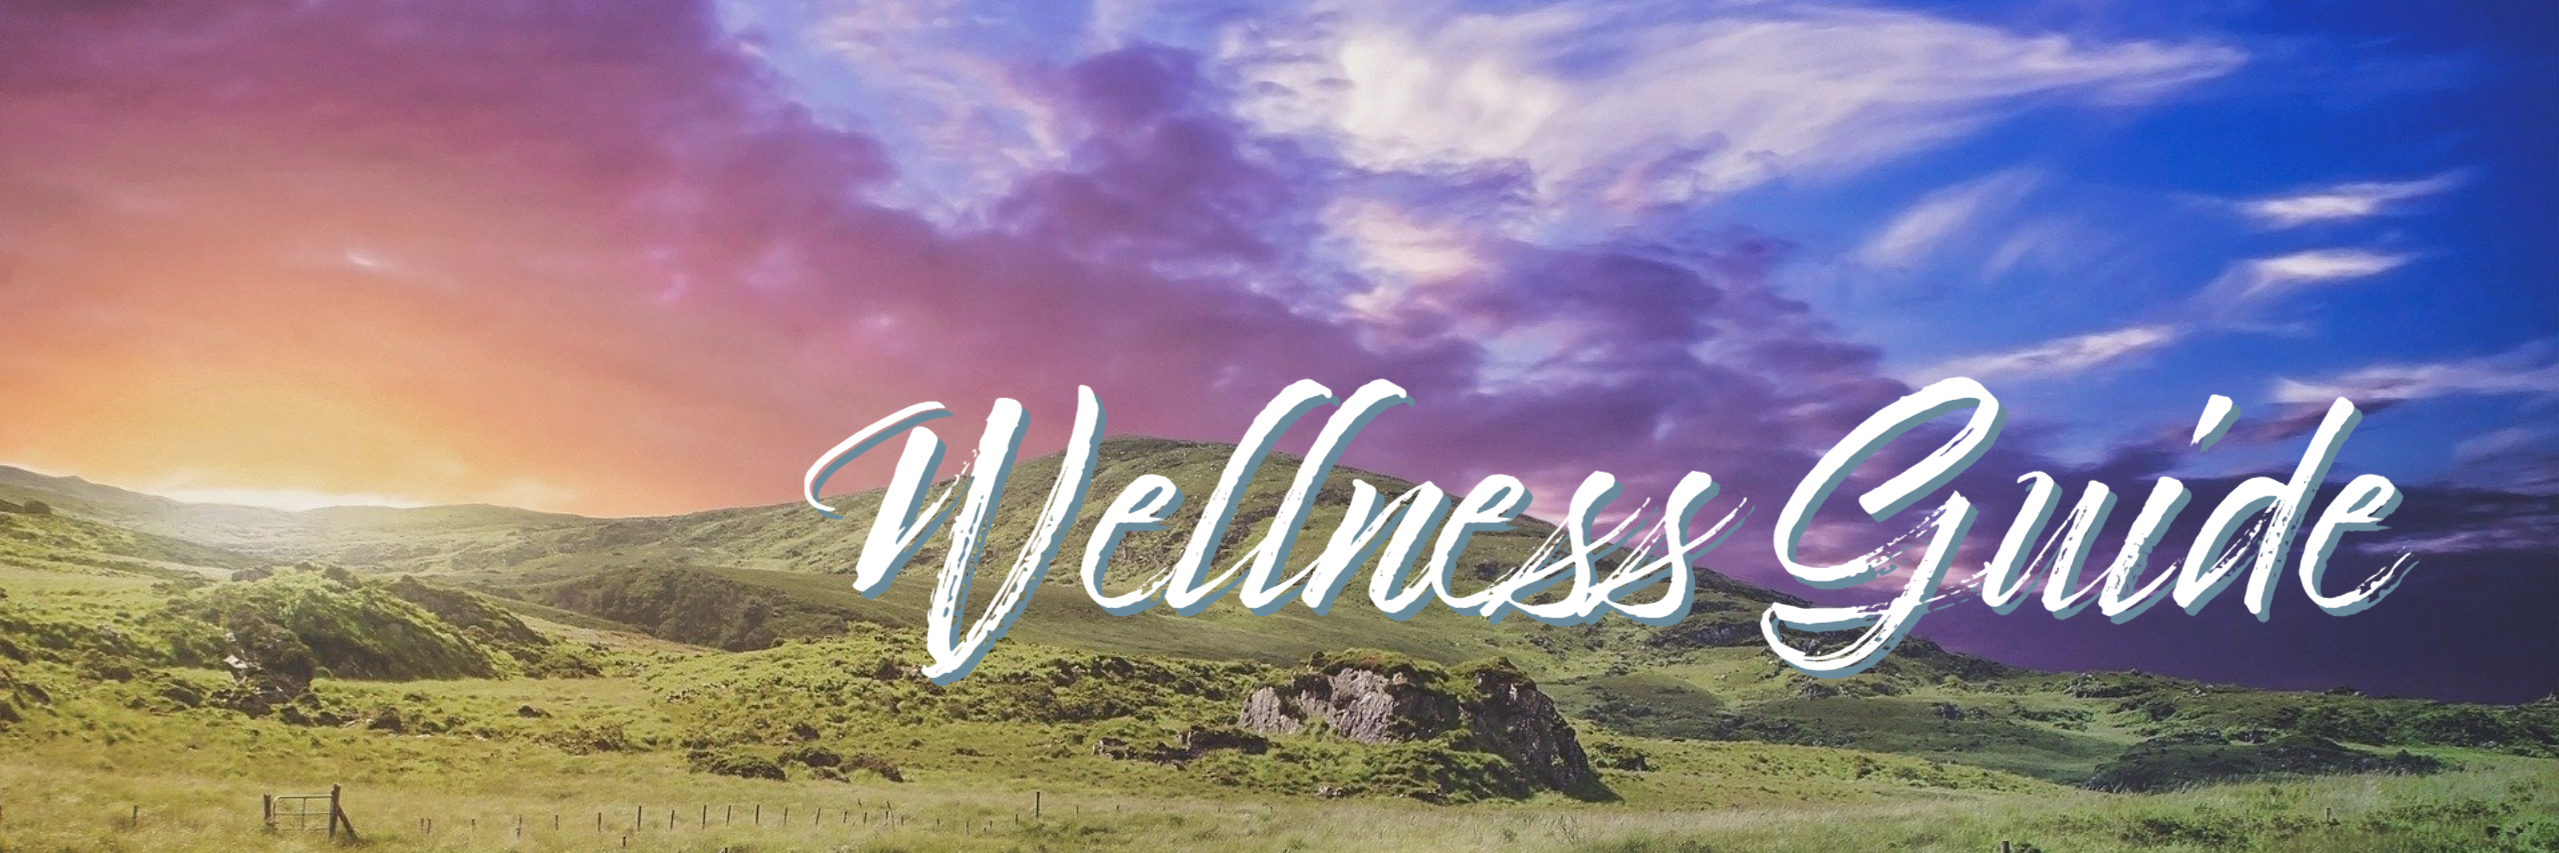 wellness guide banner